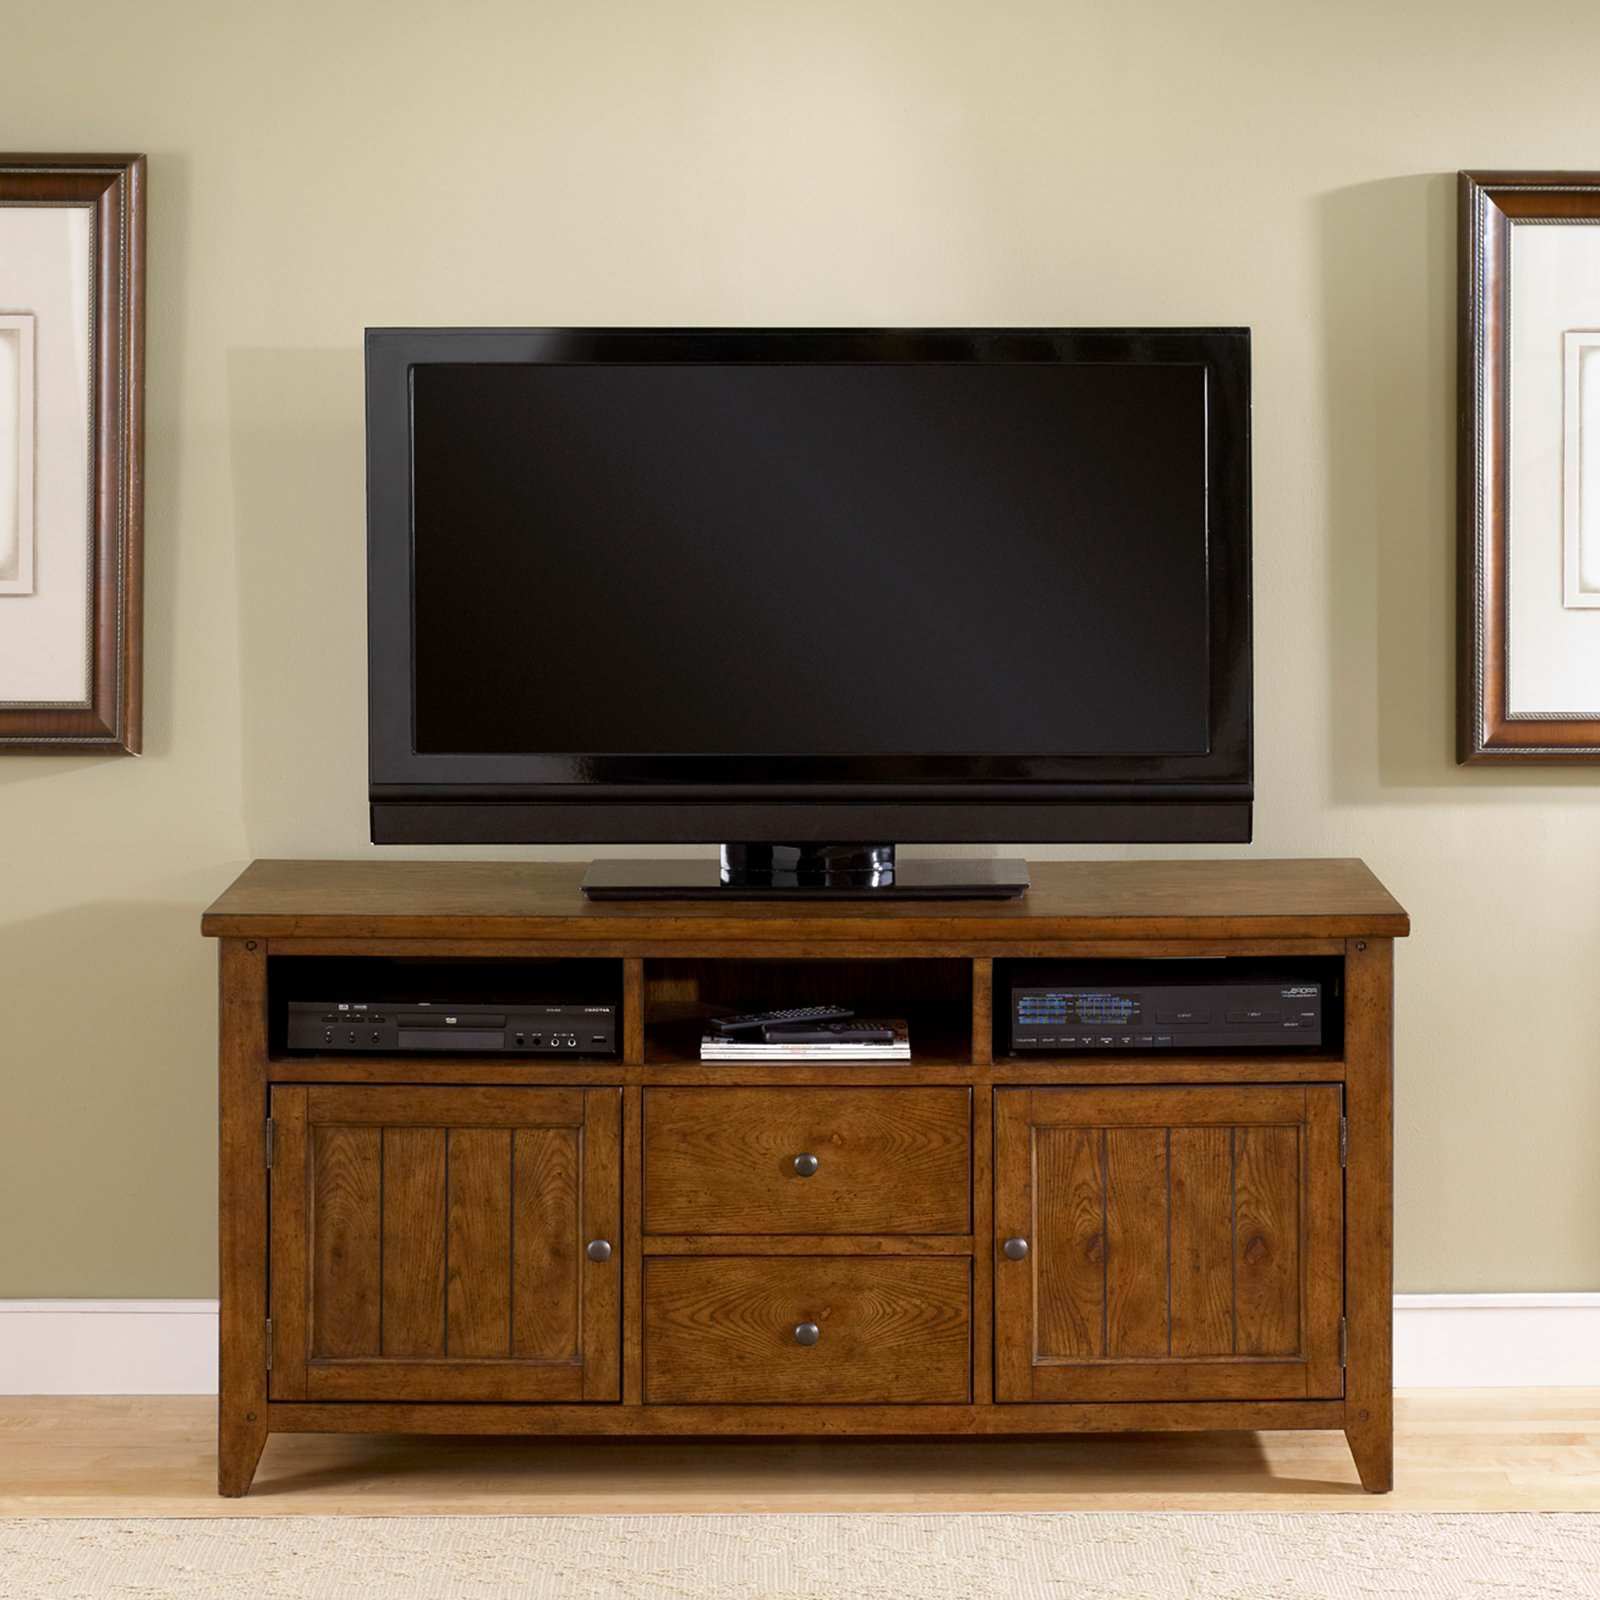 Unique Tv Stands For Flat Screens With Regard To Newest Unique Oak Rustic Tv Stands For Flat Screens : Rustic Tv Stands For (View 11 of 20)